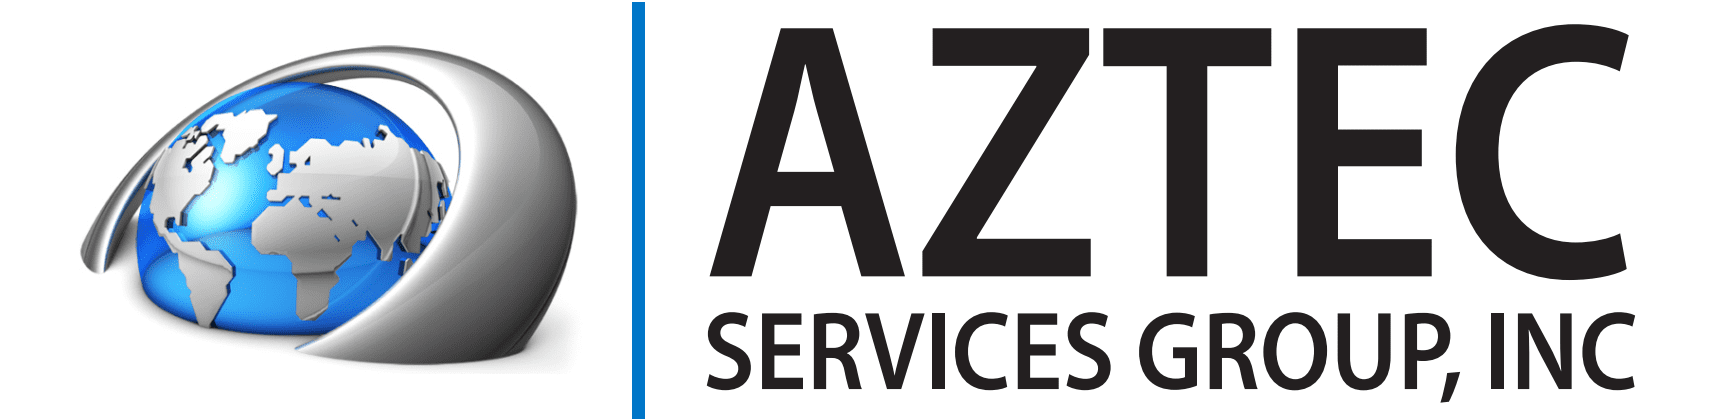 Aztec Services Group Inc.